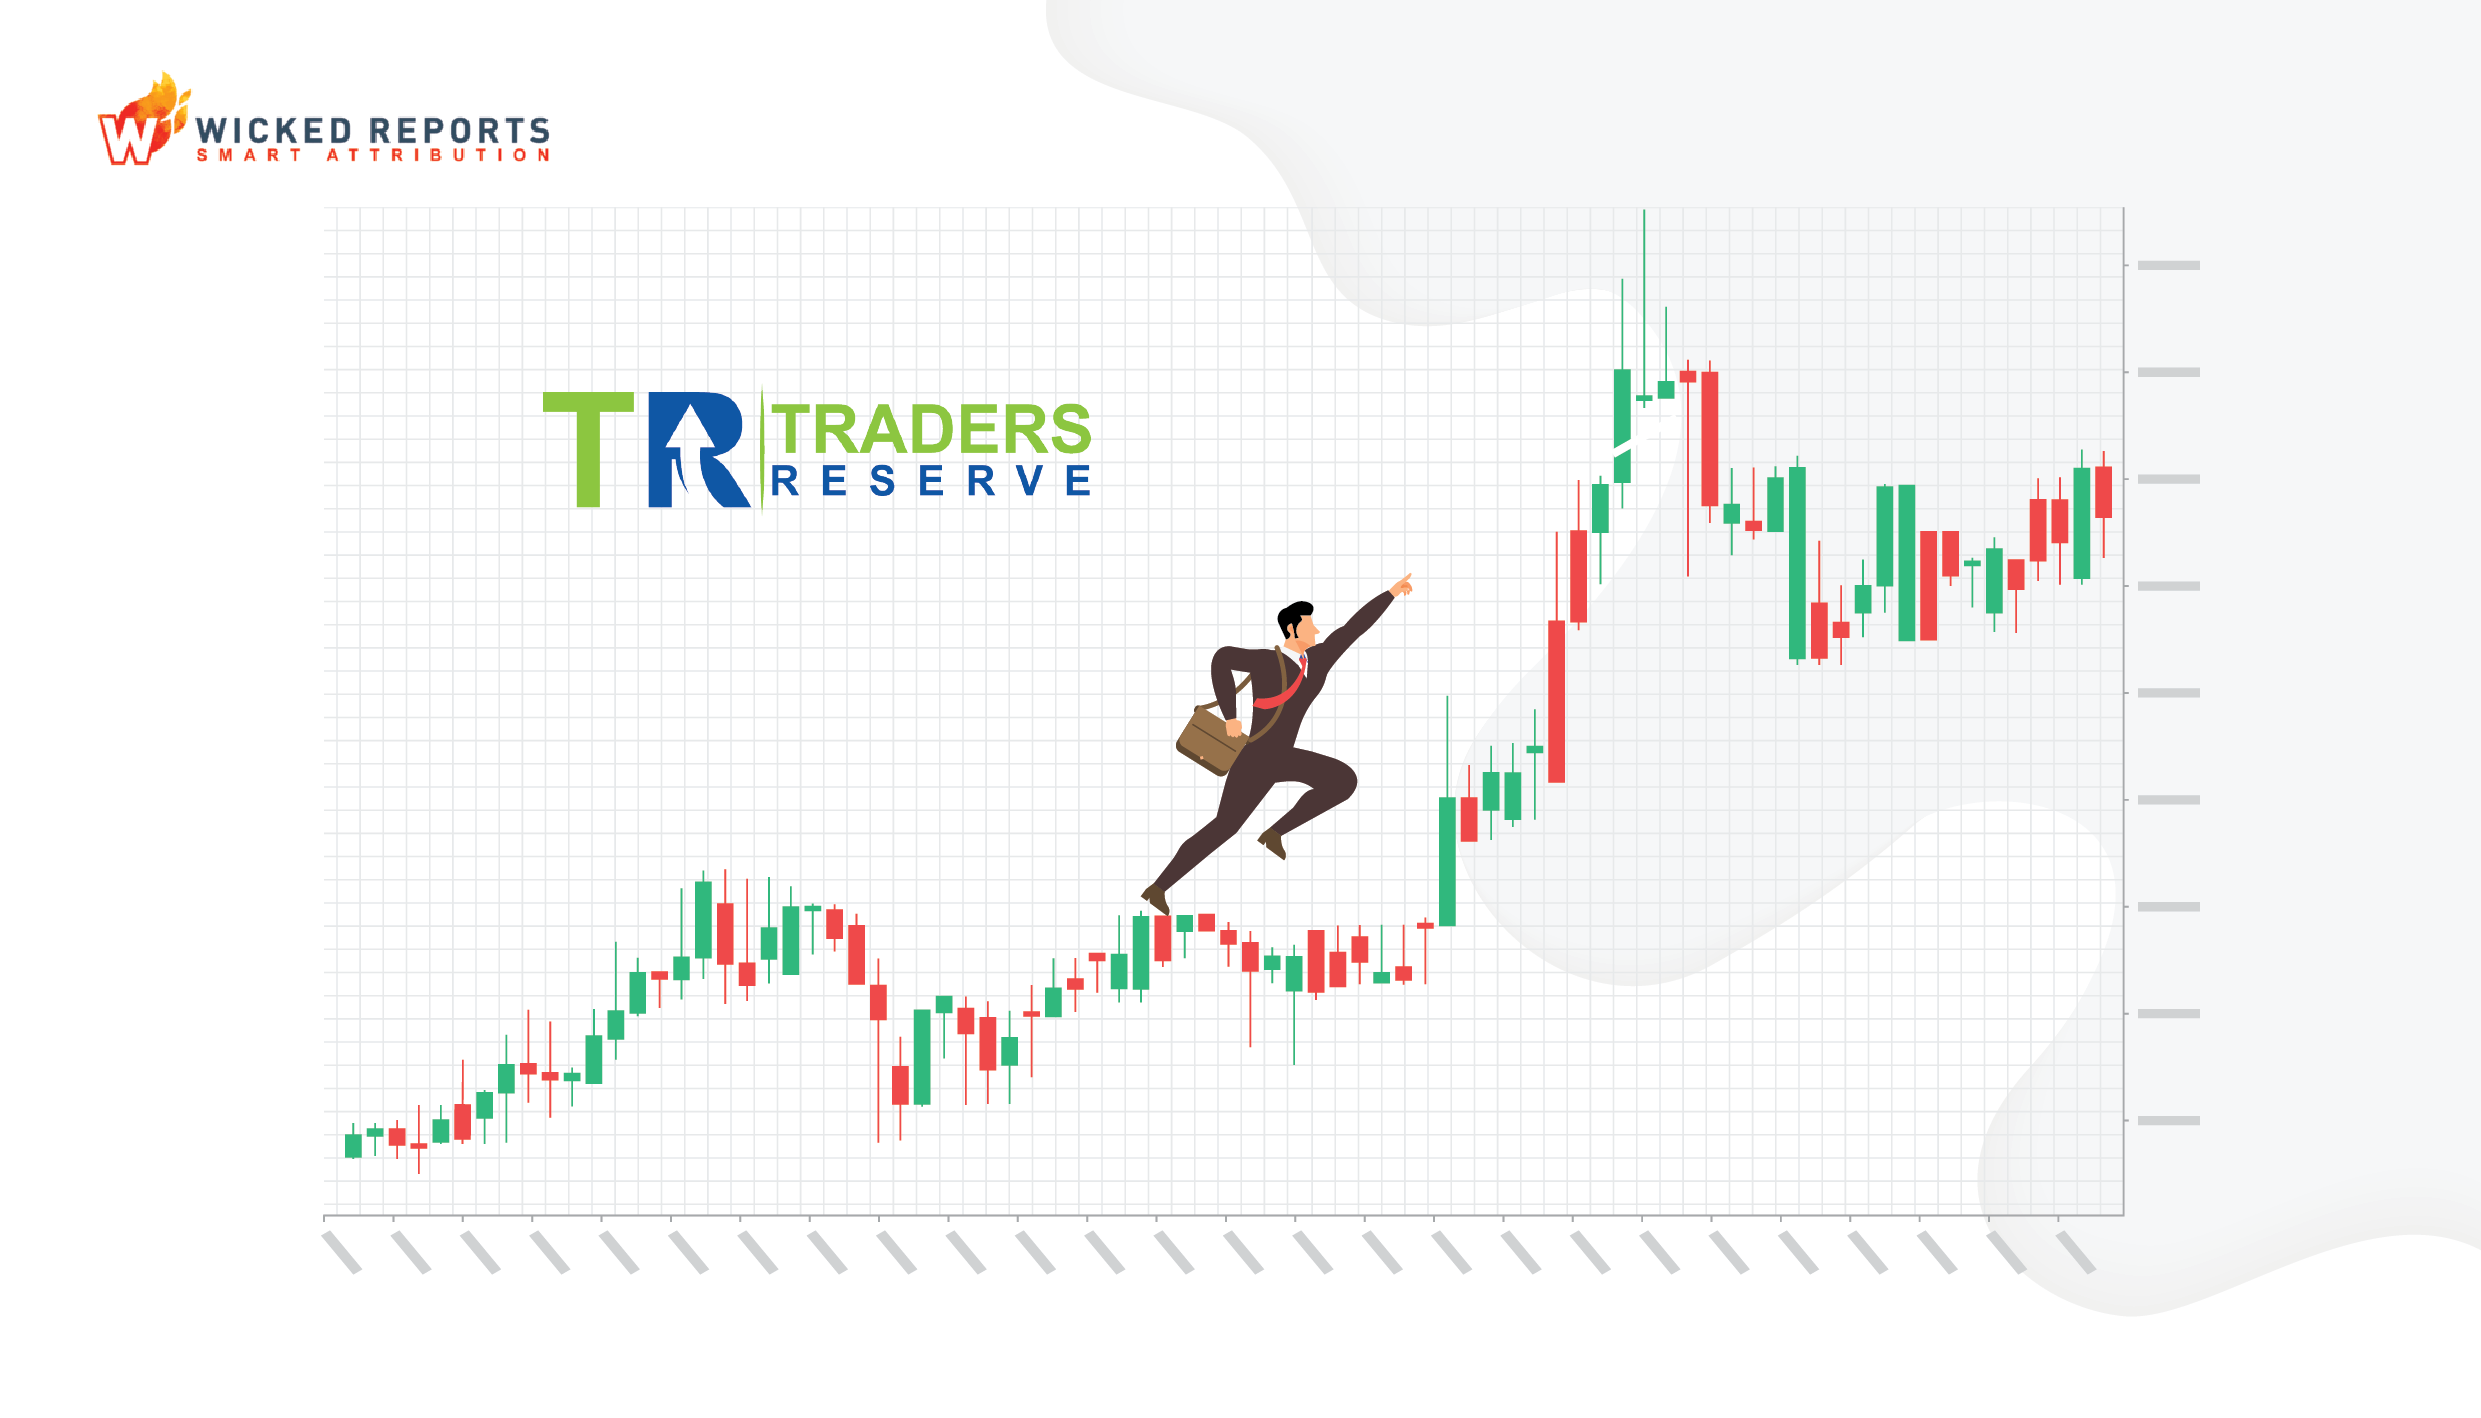 Traders Reserve graphic